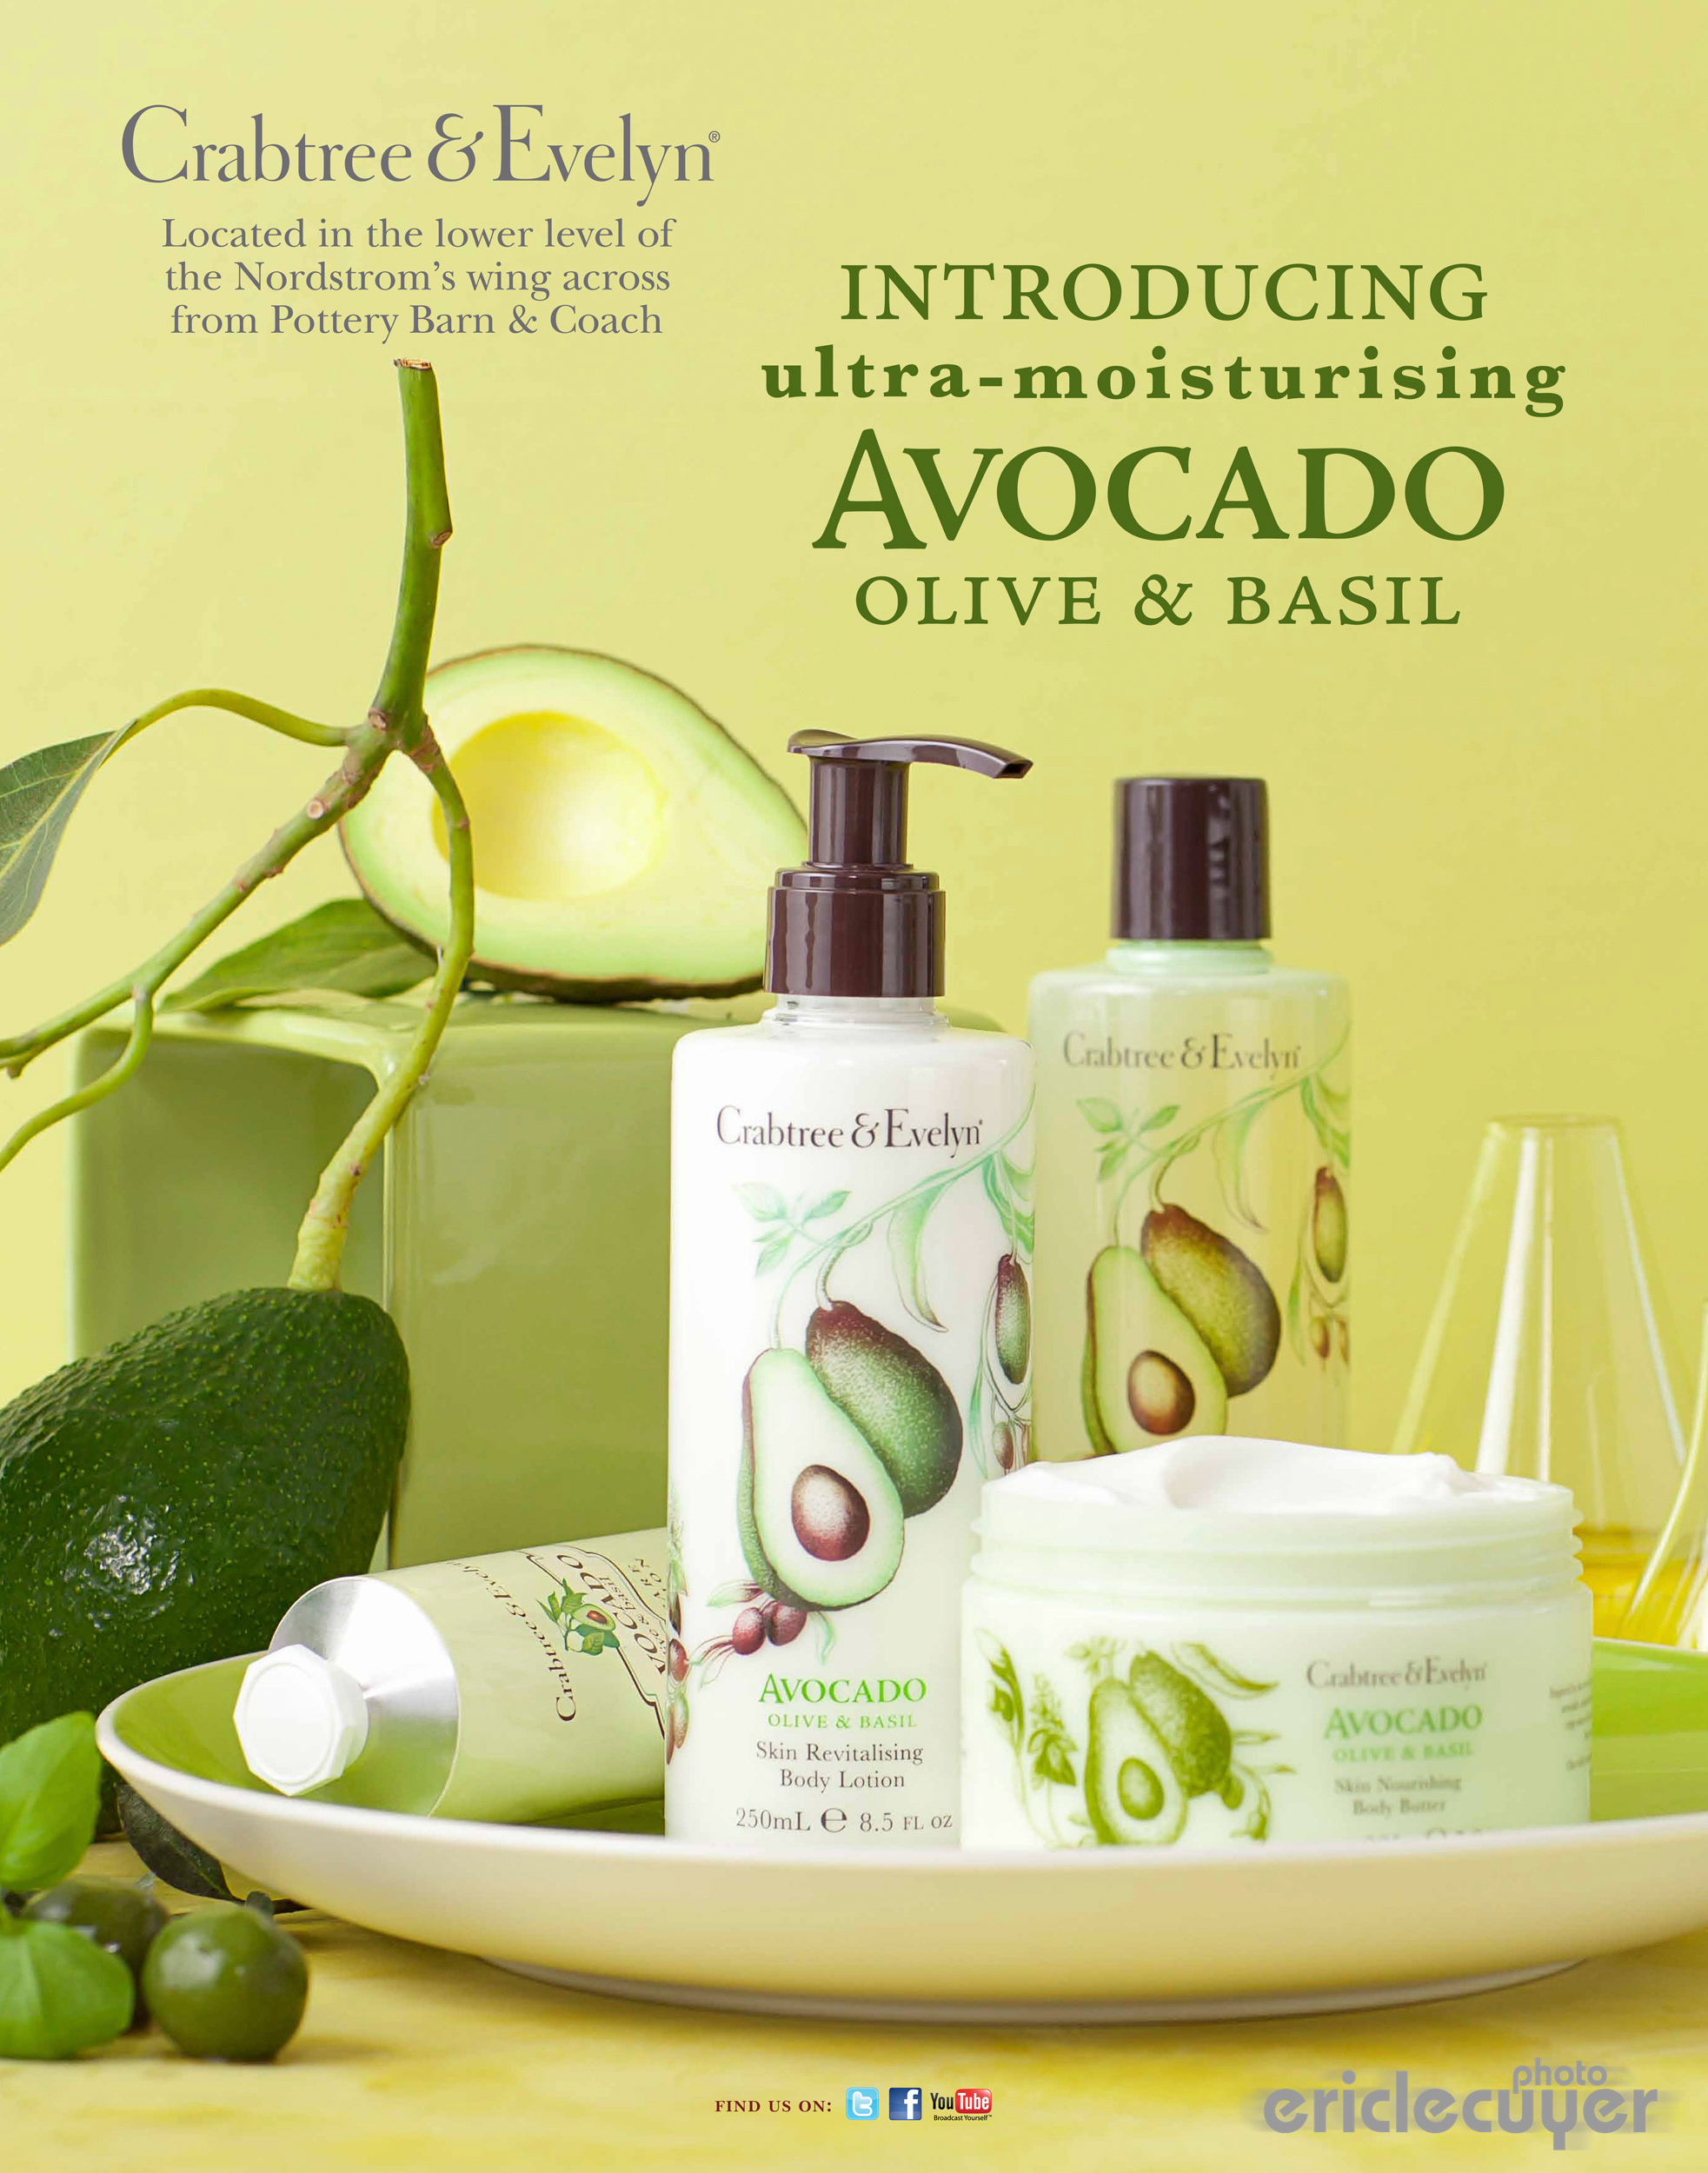 0105__22x28_GGP_Avocado-1.jpg